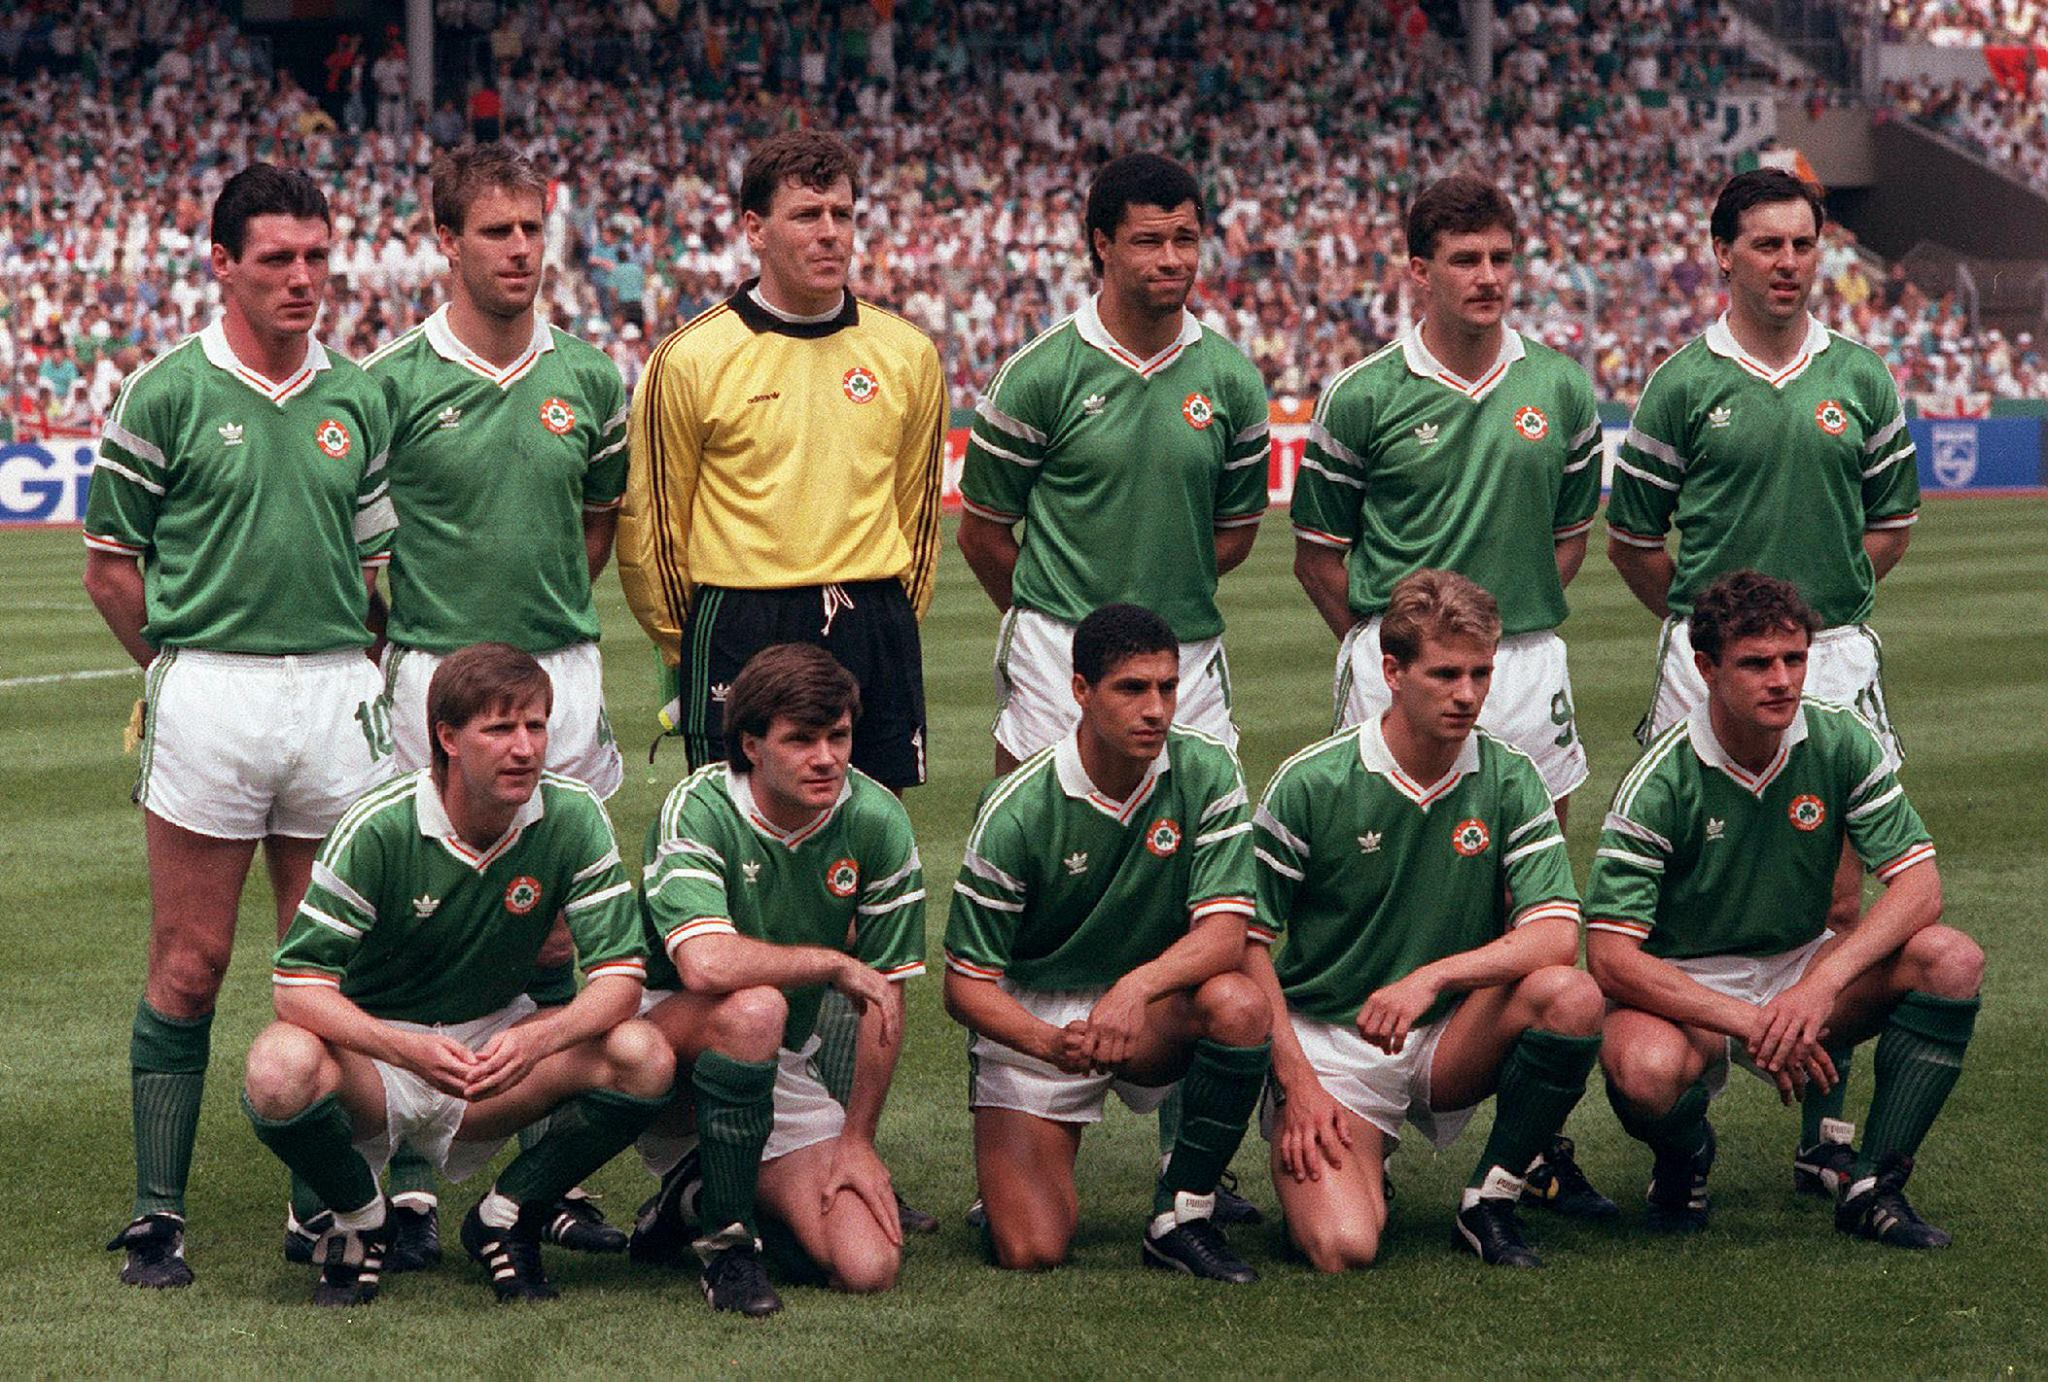 The Republic of Ireland soccer team competing in the 1988 UEFA European Championships